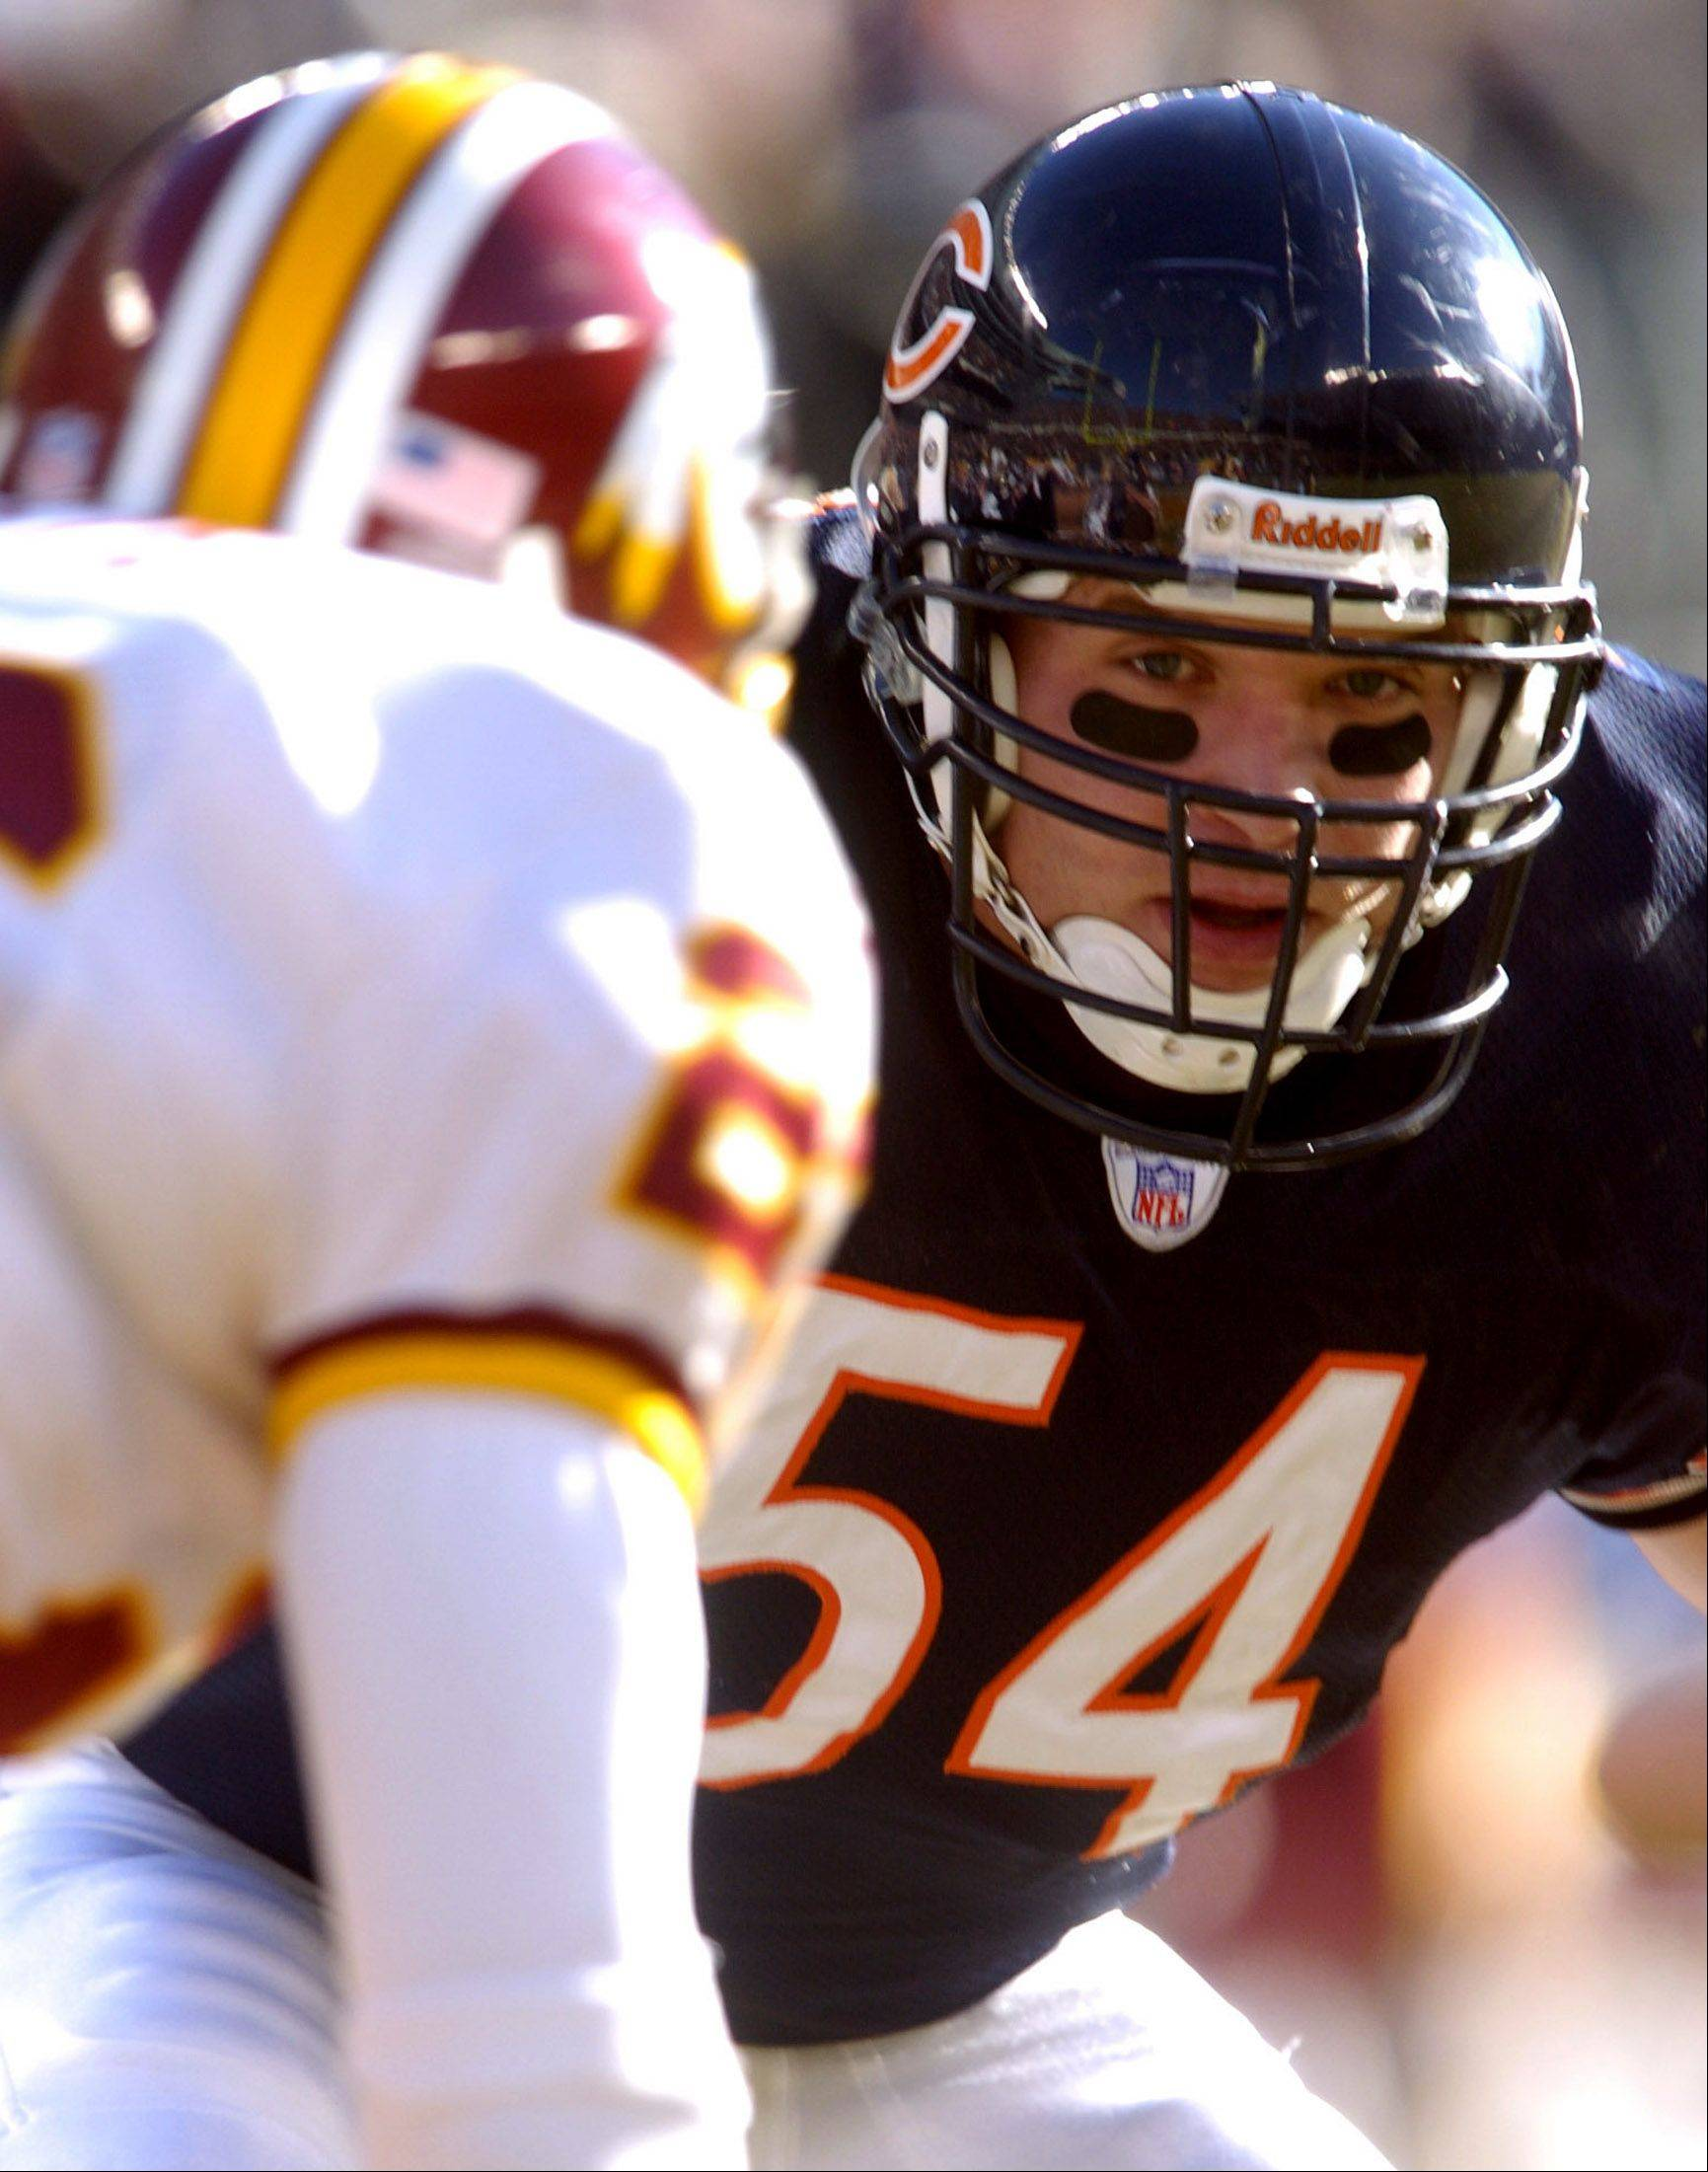 Brian Urlacher against the Washington Redskins.